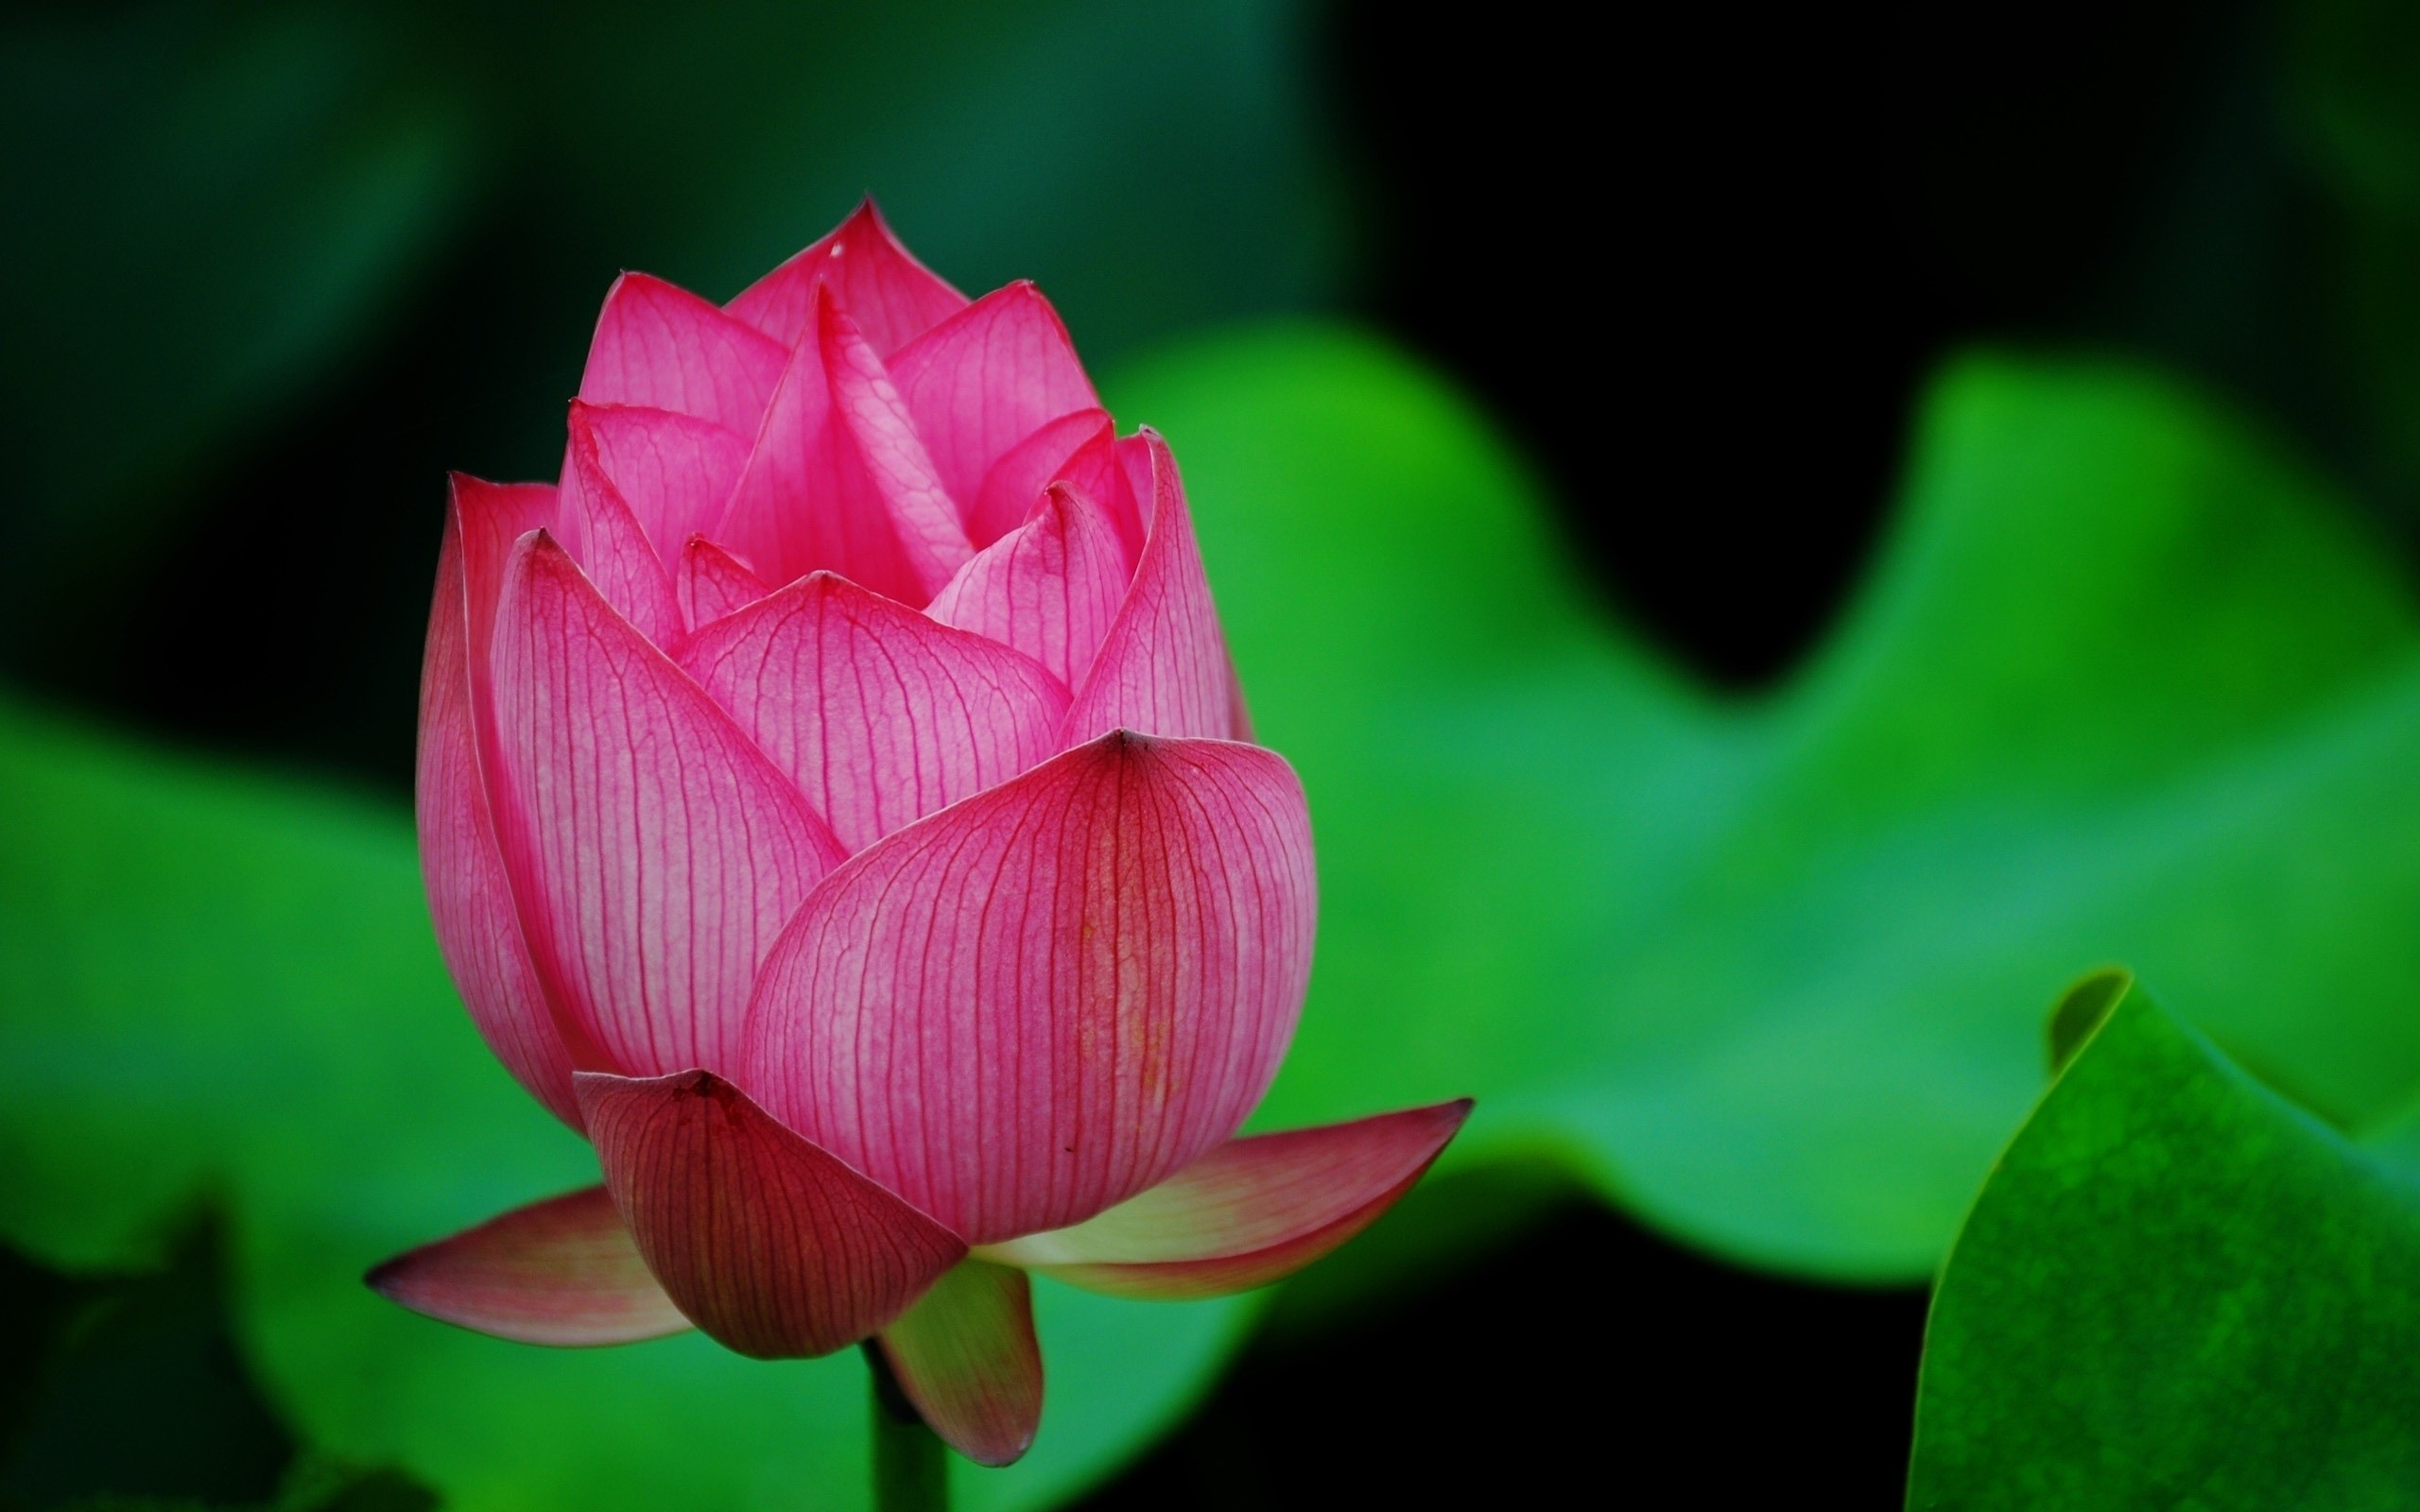 Lotus Flower Pink Hd Flowers 4k Wallpapers Images Backgrounds